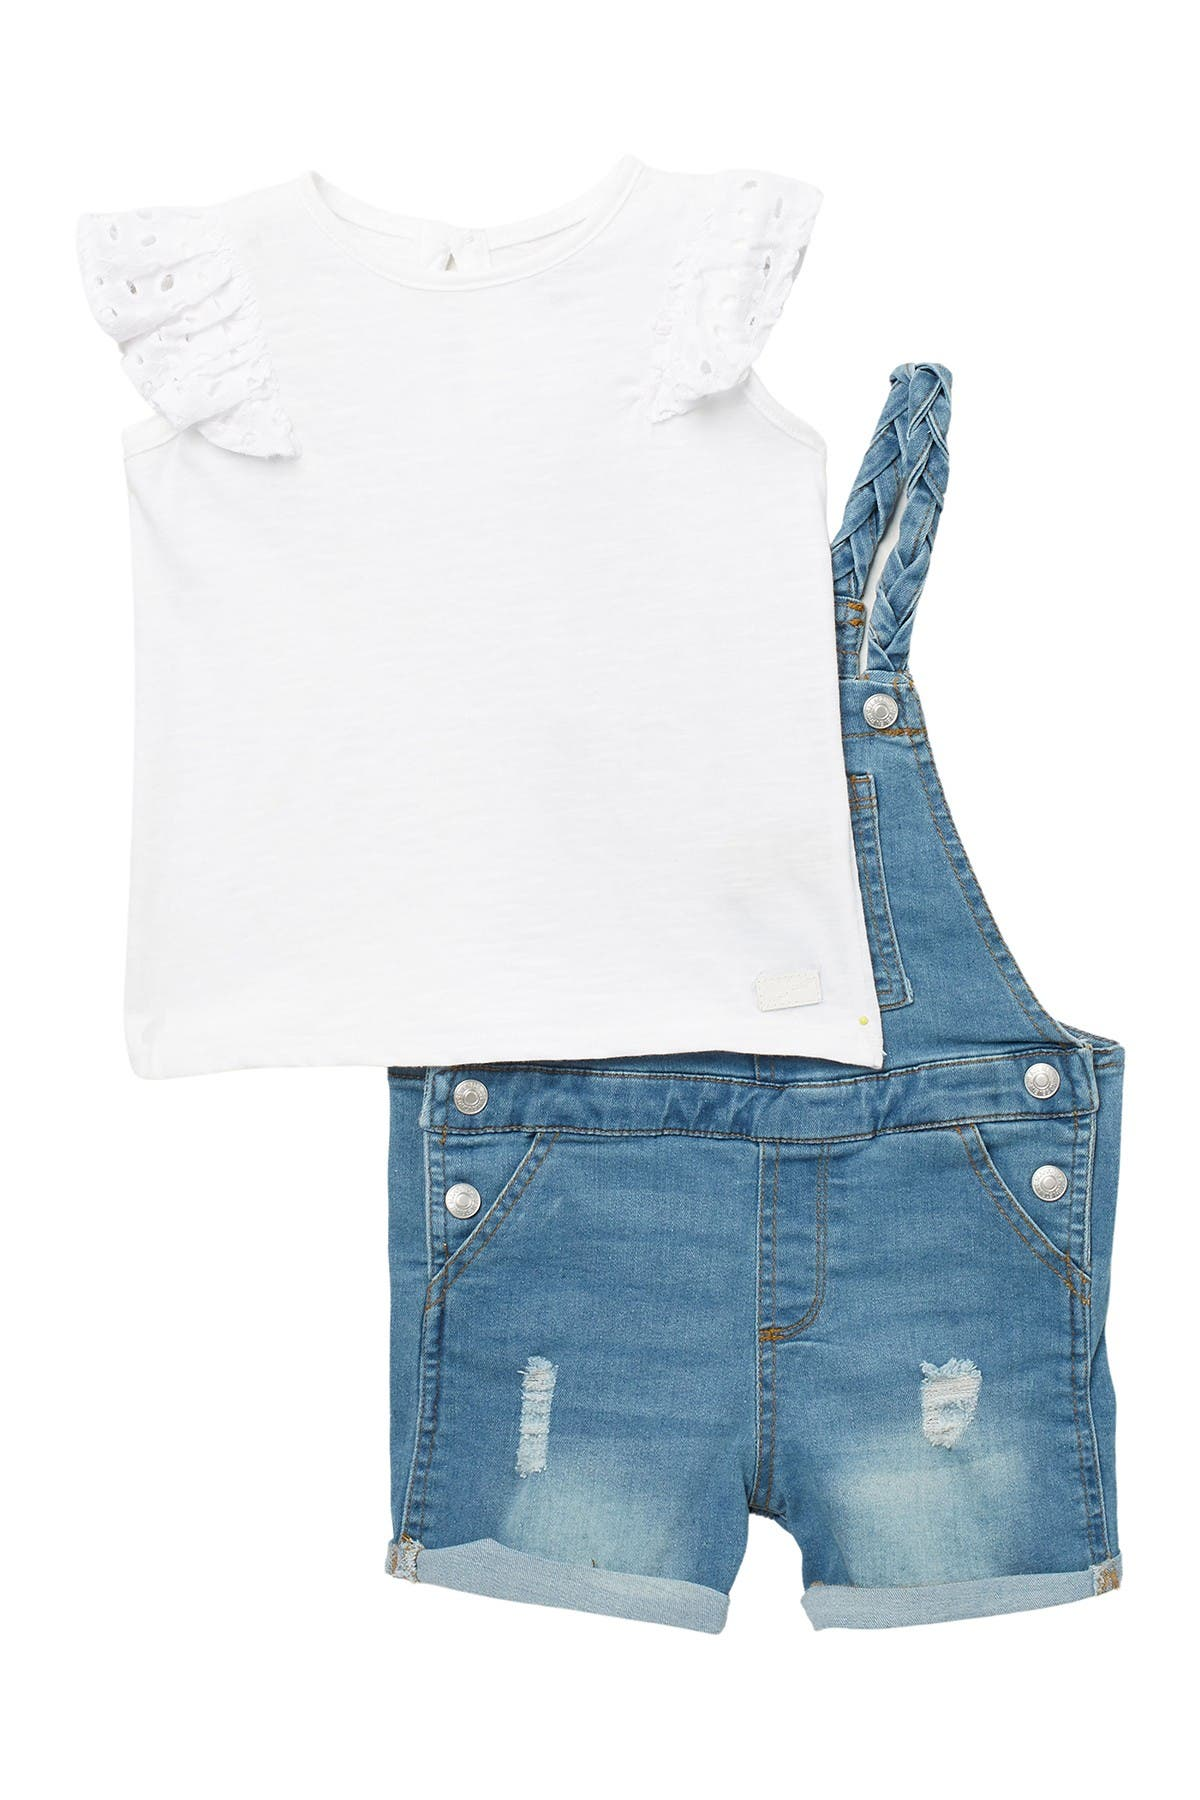 Image of 7 For All Mankind Ruffle Top & Denim Overalls Set